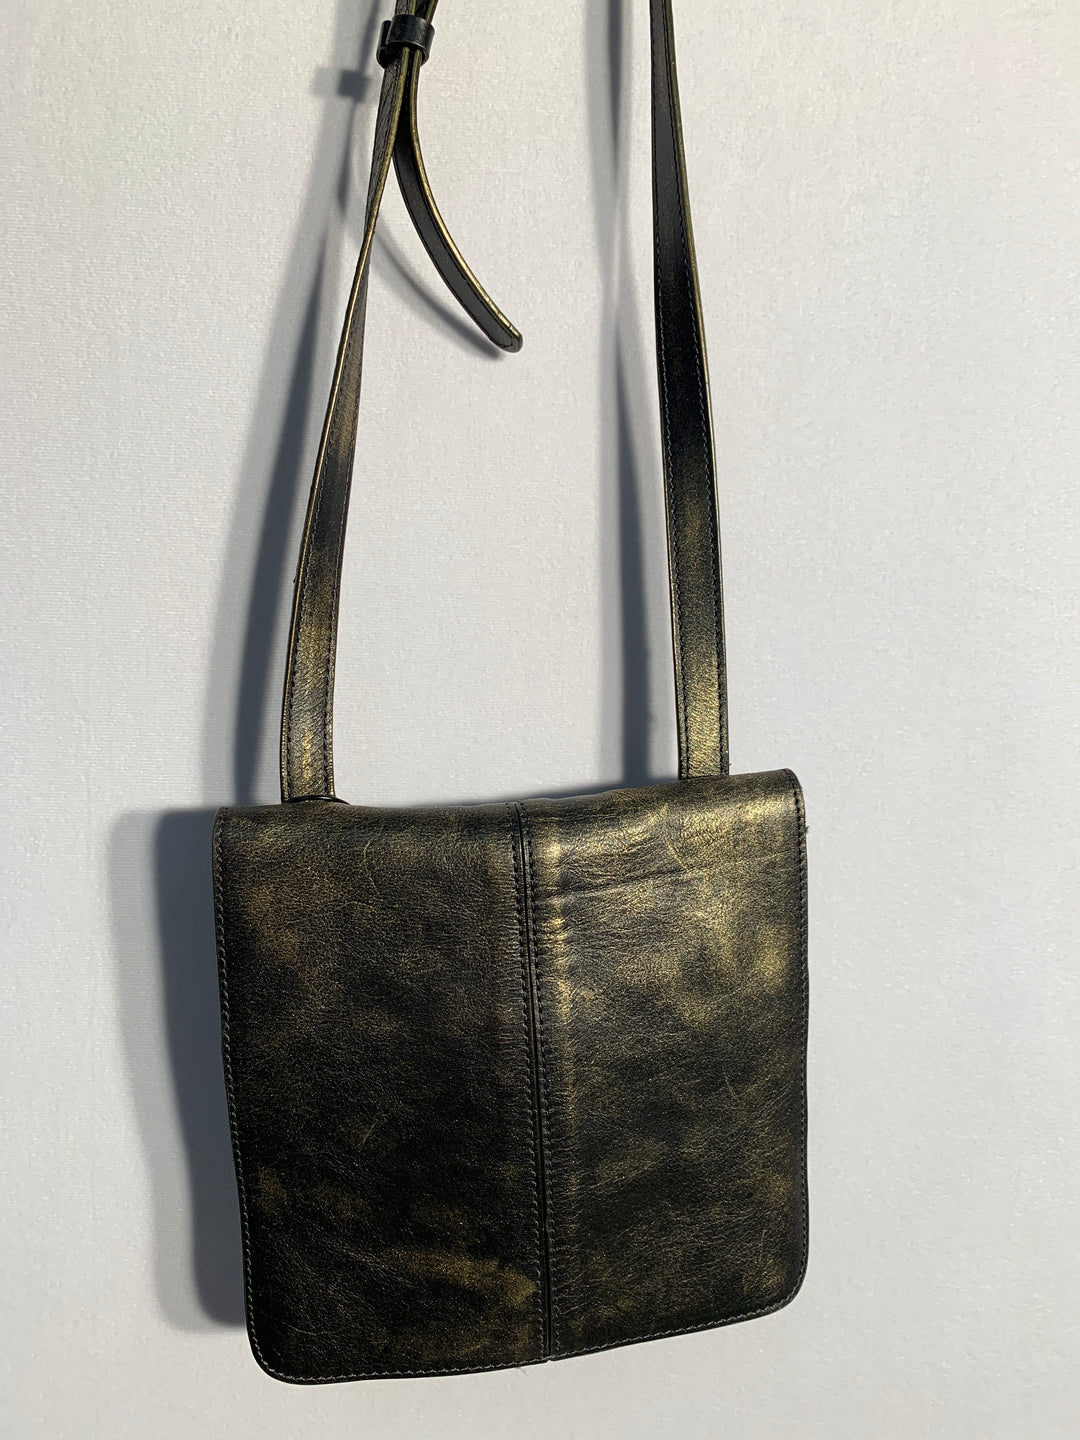 Primary Photo - BRAND: PATRICIA NASH<BR>STYLE: HANDBAG DESIGNER<BR>COLOR: BRONZE<BR>SIZE: SMALL<BR>SKU: 313-31344-4424